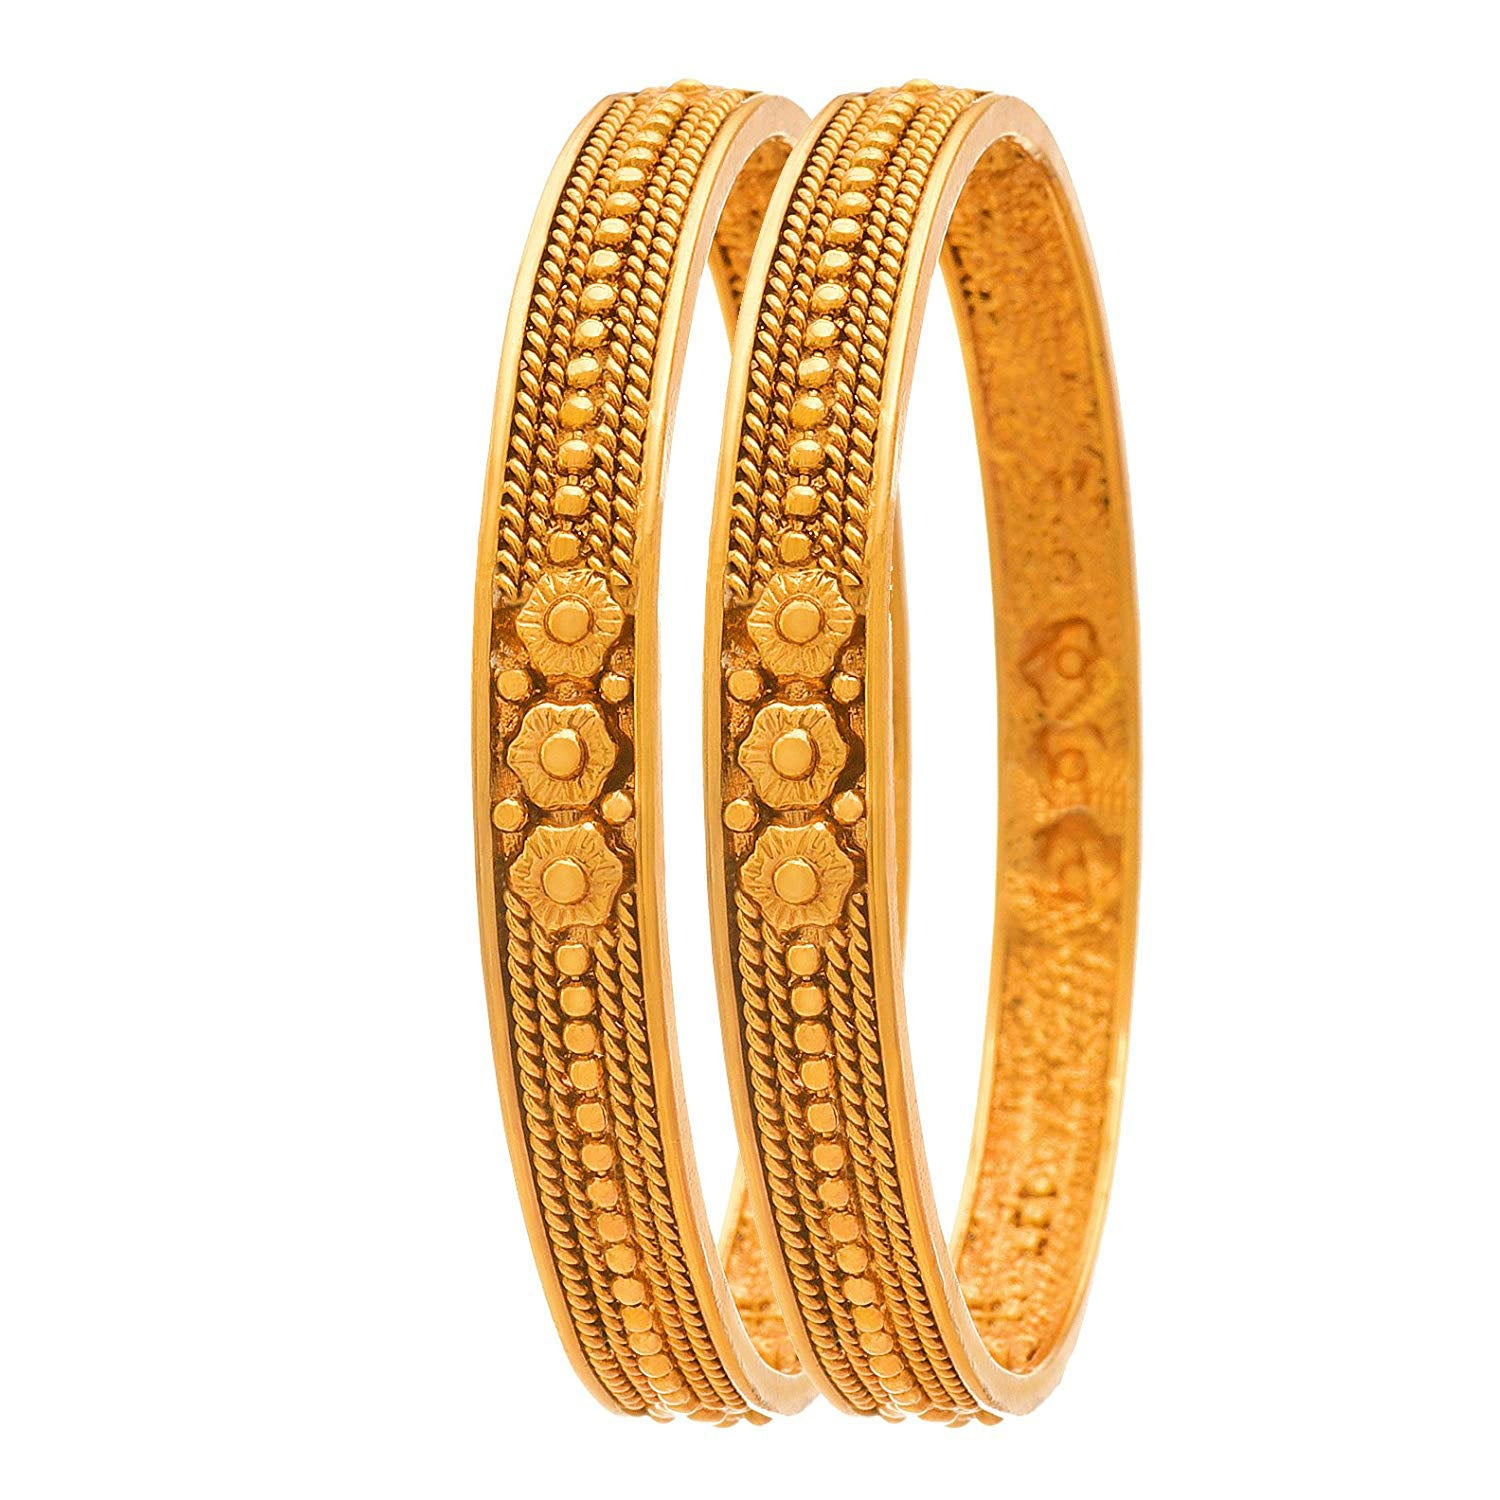 Jewellery for Less Gold Plated Bangle Set for Women